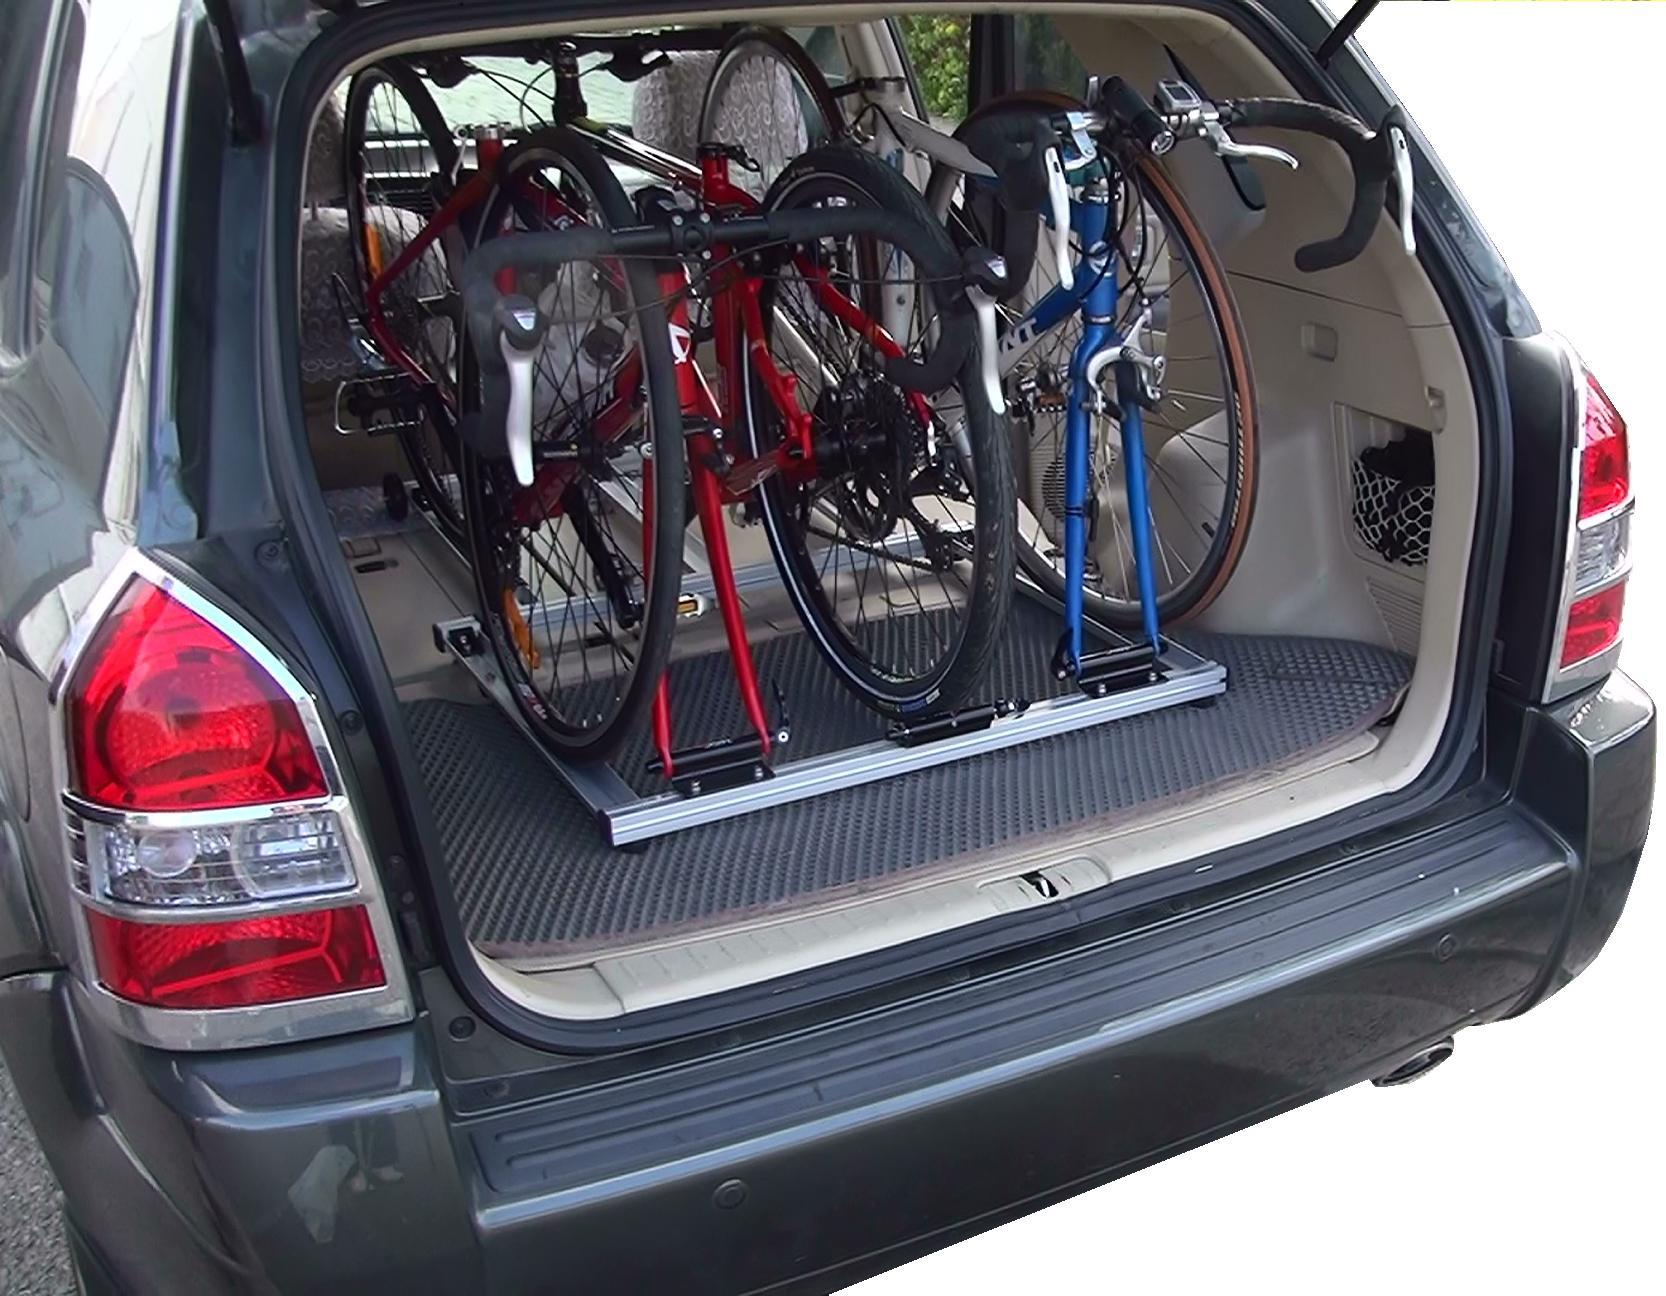 3 mtb bicycles in car carrier rack for van rv suv interior bike rack 100 made in taiwan sports. Black Bedroom Furniture Sets. Home Design Ideas